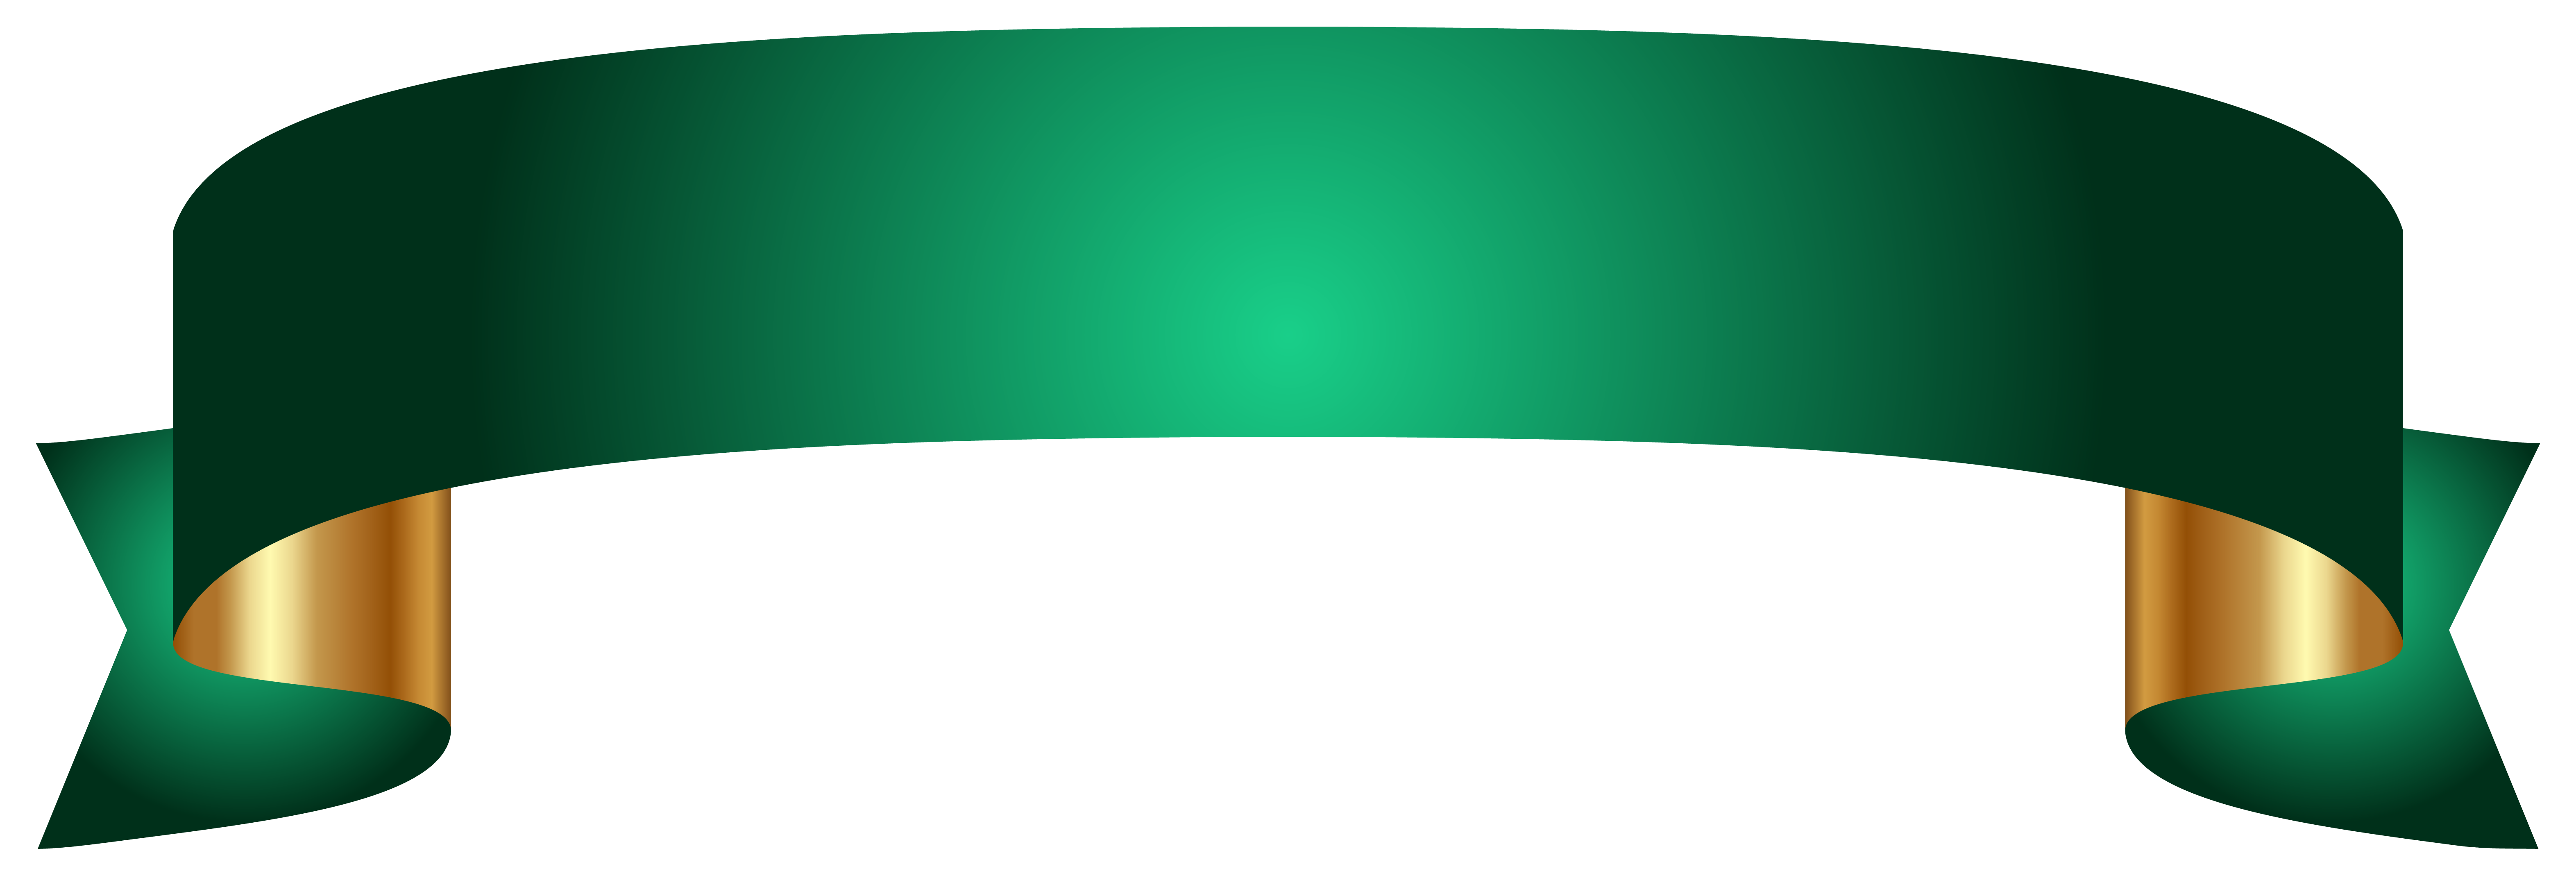 Green Banner Transparent Png Image